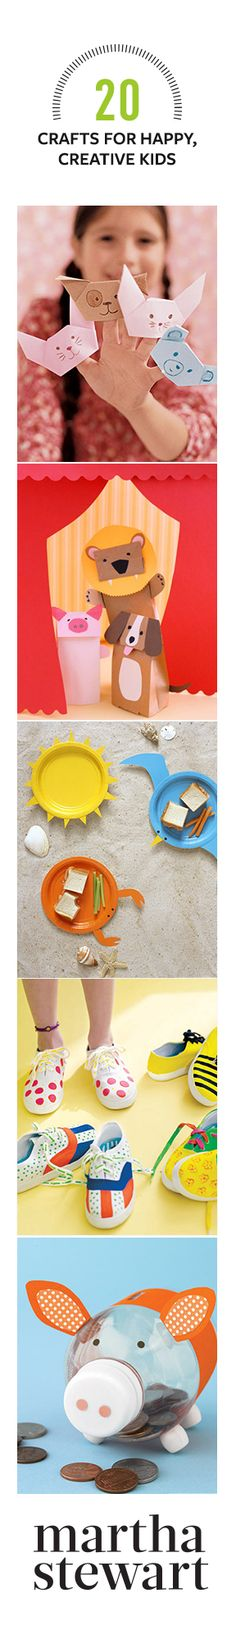 20 Crafts for Happy, Creative Kids